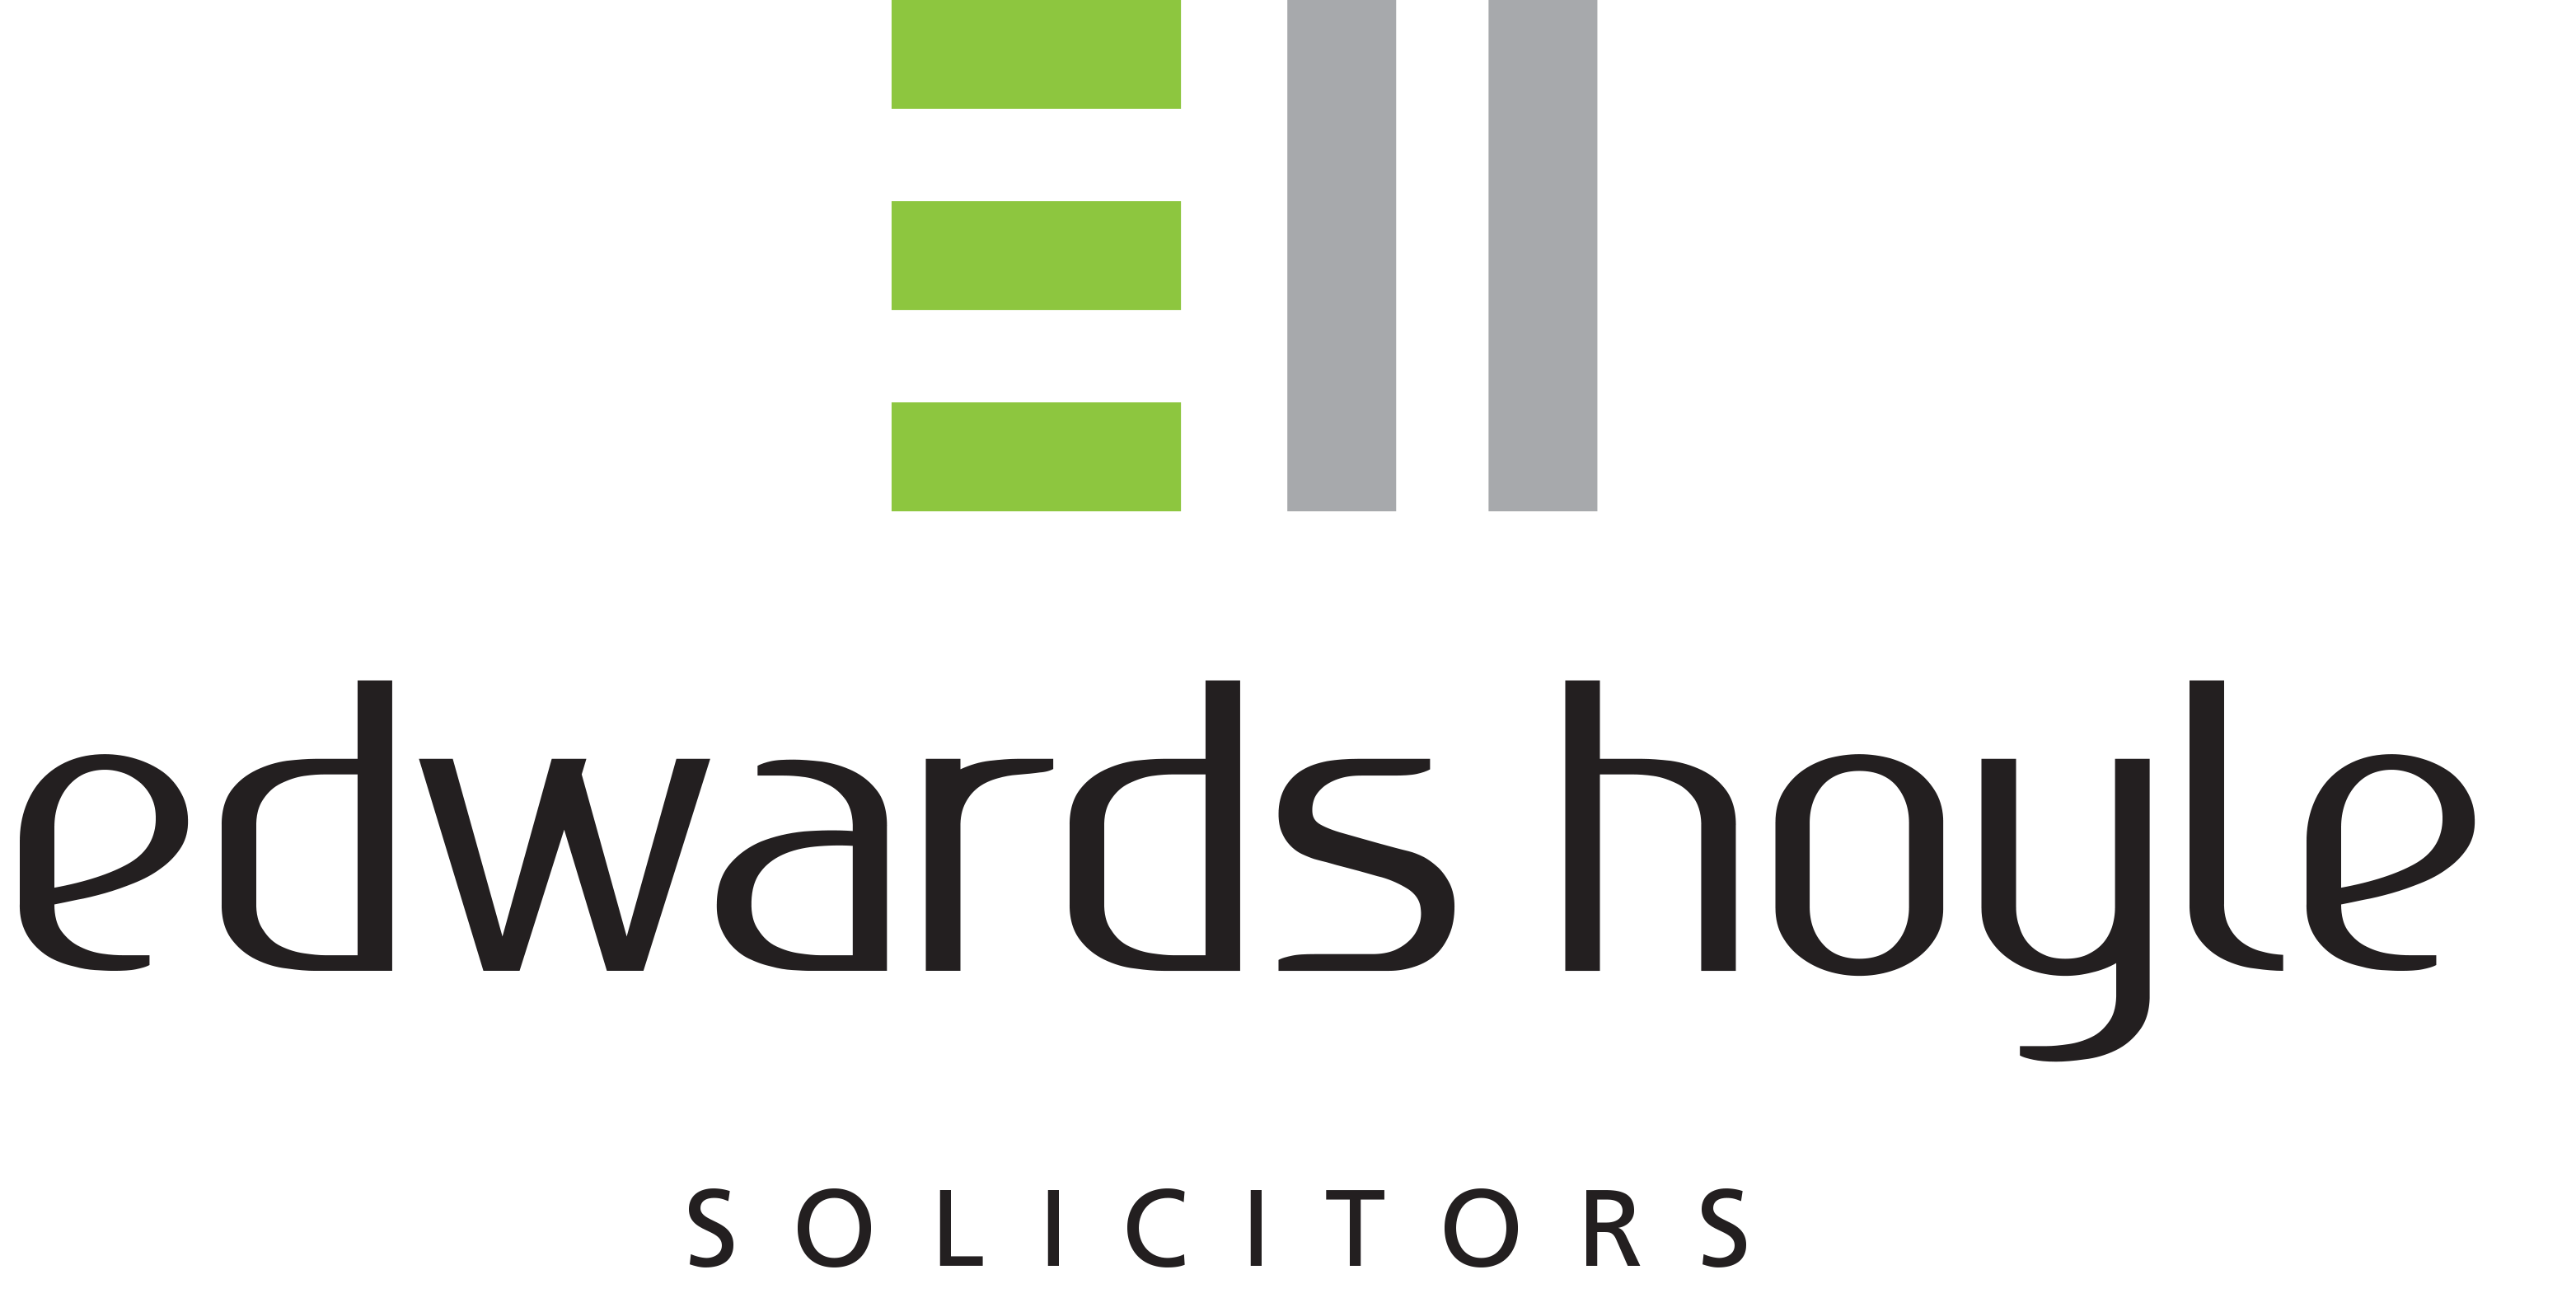 Edwards Hoyle Solicitors Logo pdf